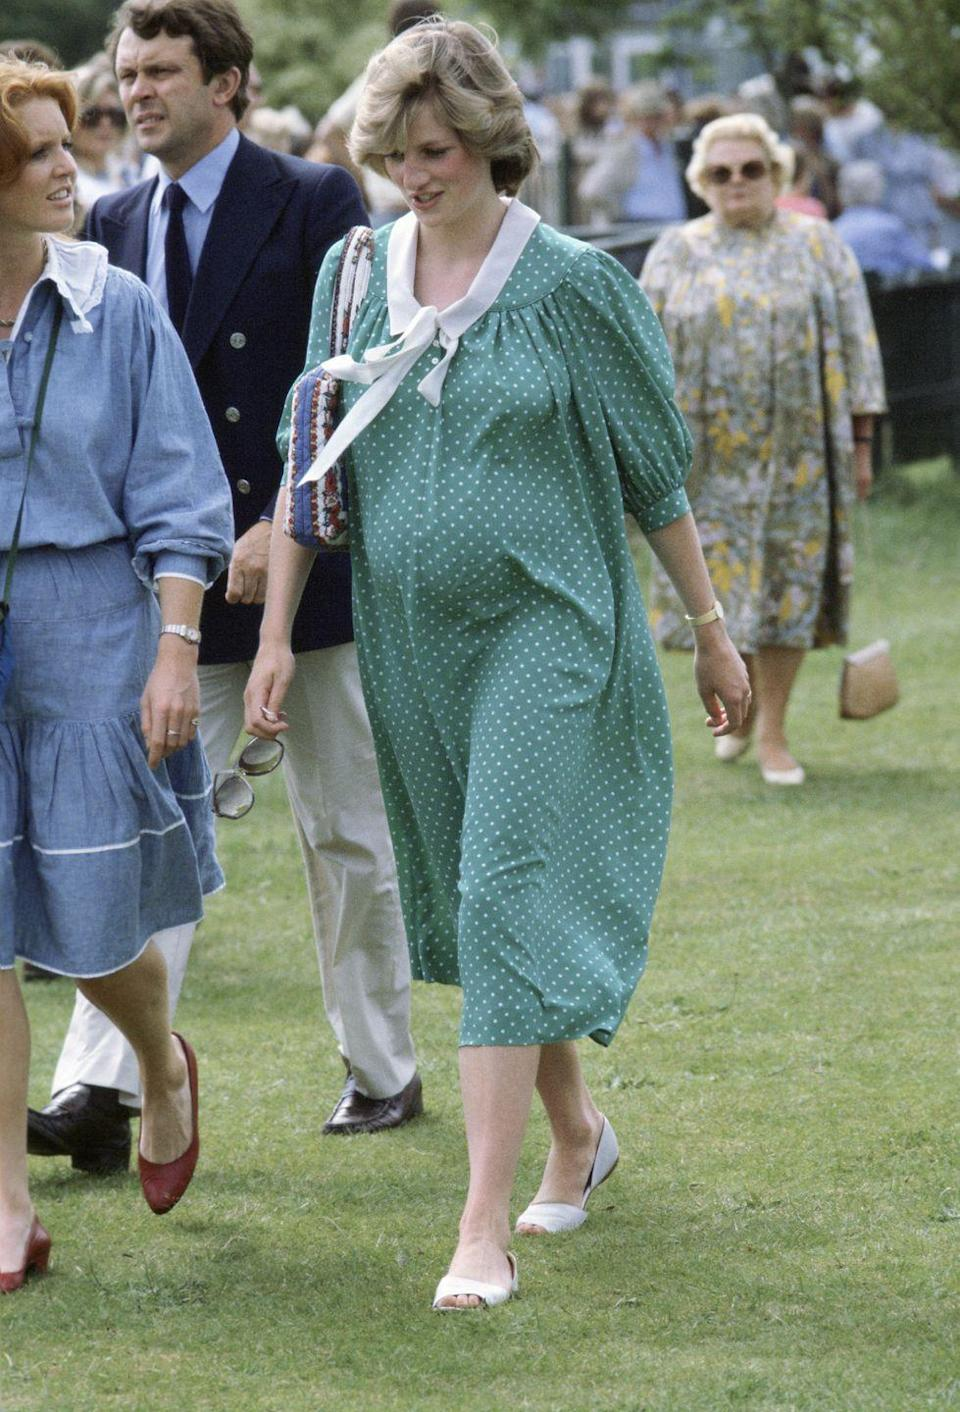 """<p>Princess Diana also took a few departures from the coat and dress combination that had been almost a uniform for royal pregnancies. None of her maternity outfits are more recognizable than this green and white polka dot dress that she wore to a polo event two weeks before Prince William was born. This would also be the very dress she would wear <a href=""""https://www.goodhousekeeping.com/beauty/fashion/tips/g1372/princess-diana-fashion/?slide=6"""" rel=""""nofollow noopener"""" target=""""_blank"""" data-ylk=""""slk:leaving the hospital"""" class=""""link rapid-noclick-resp"""">leaving the hospital</a> after he was born. </p>"""